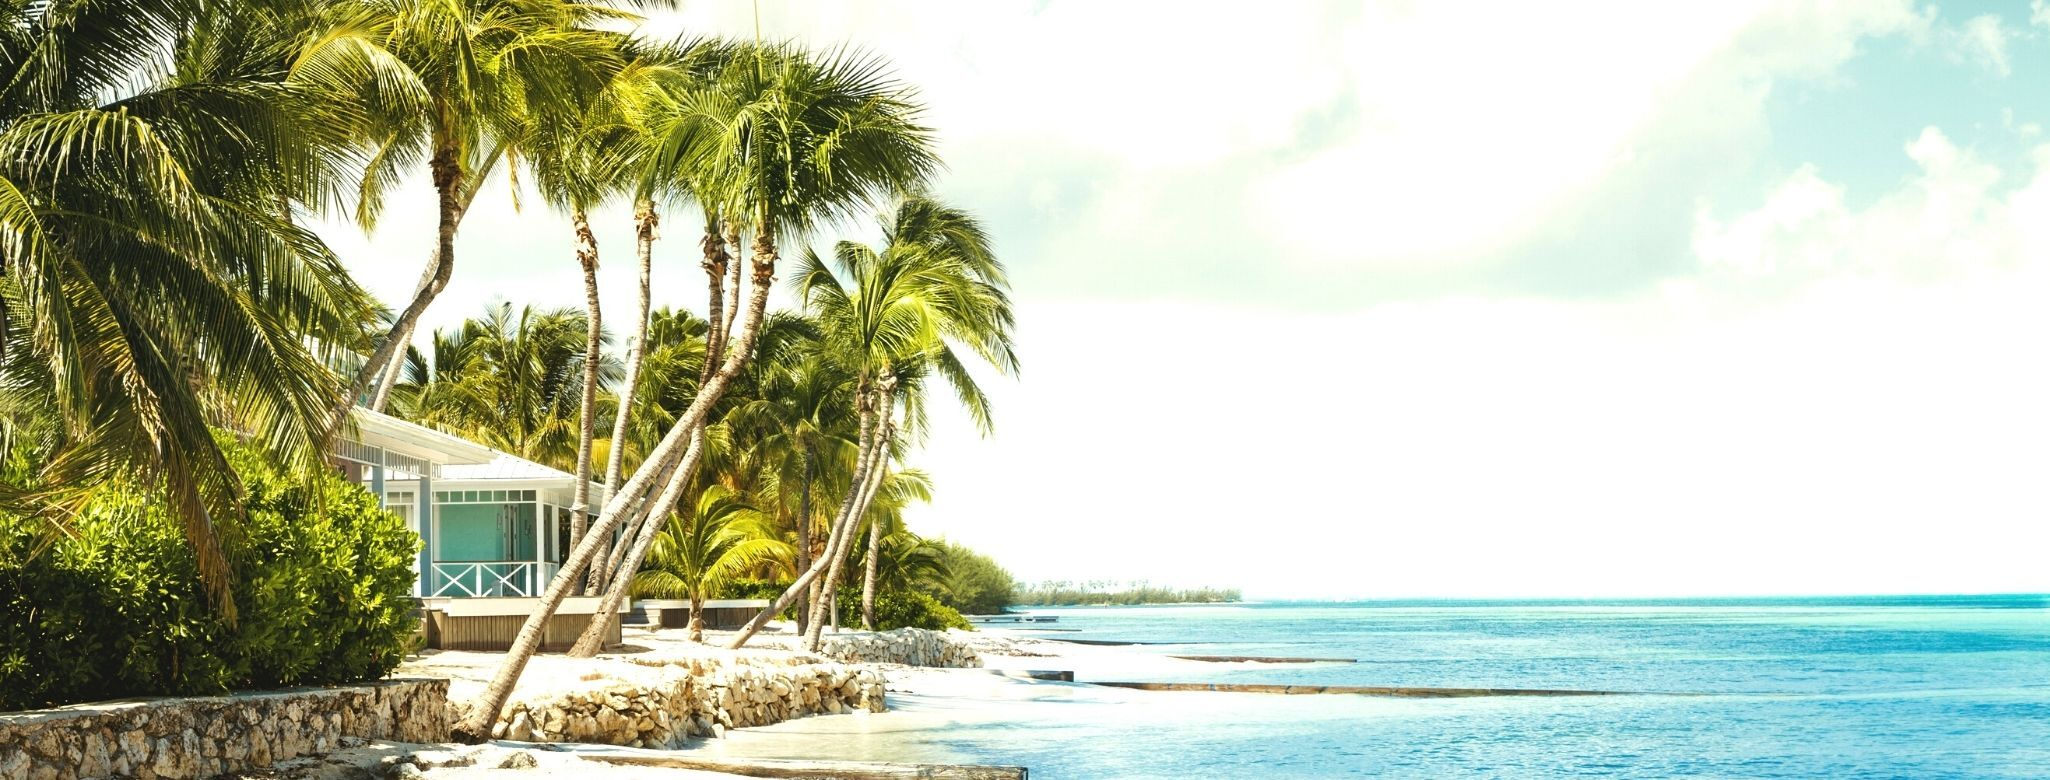 caymans island scape